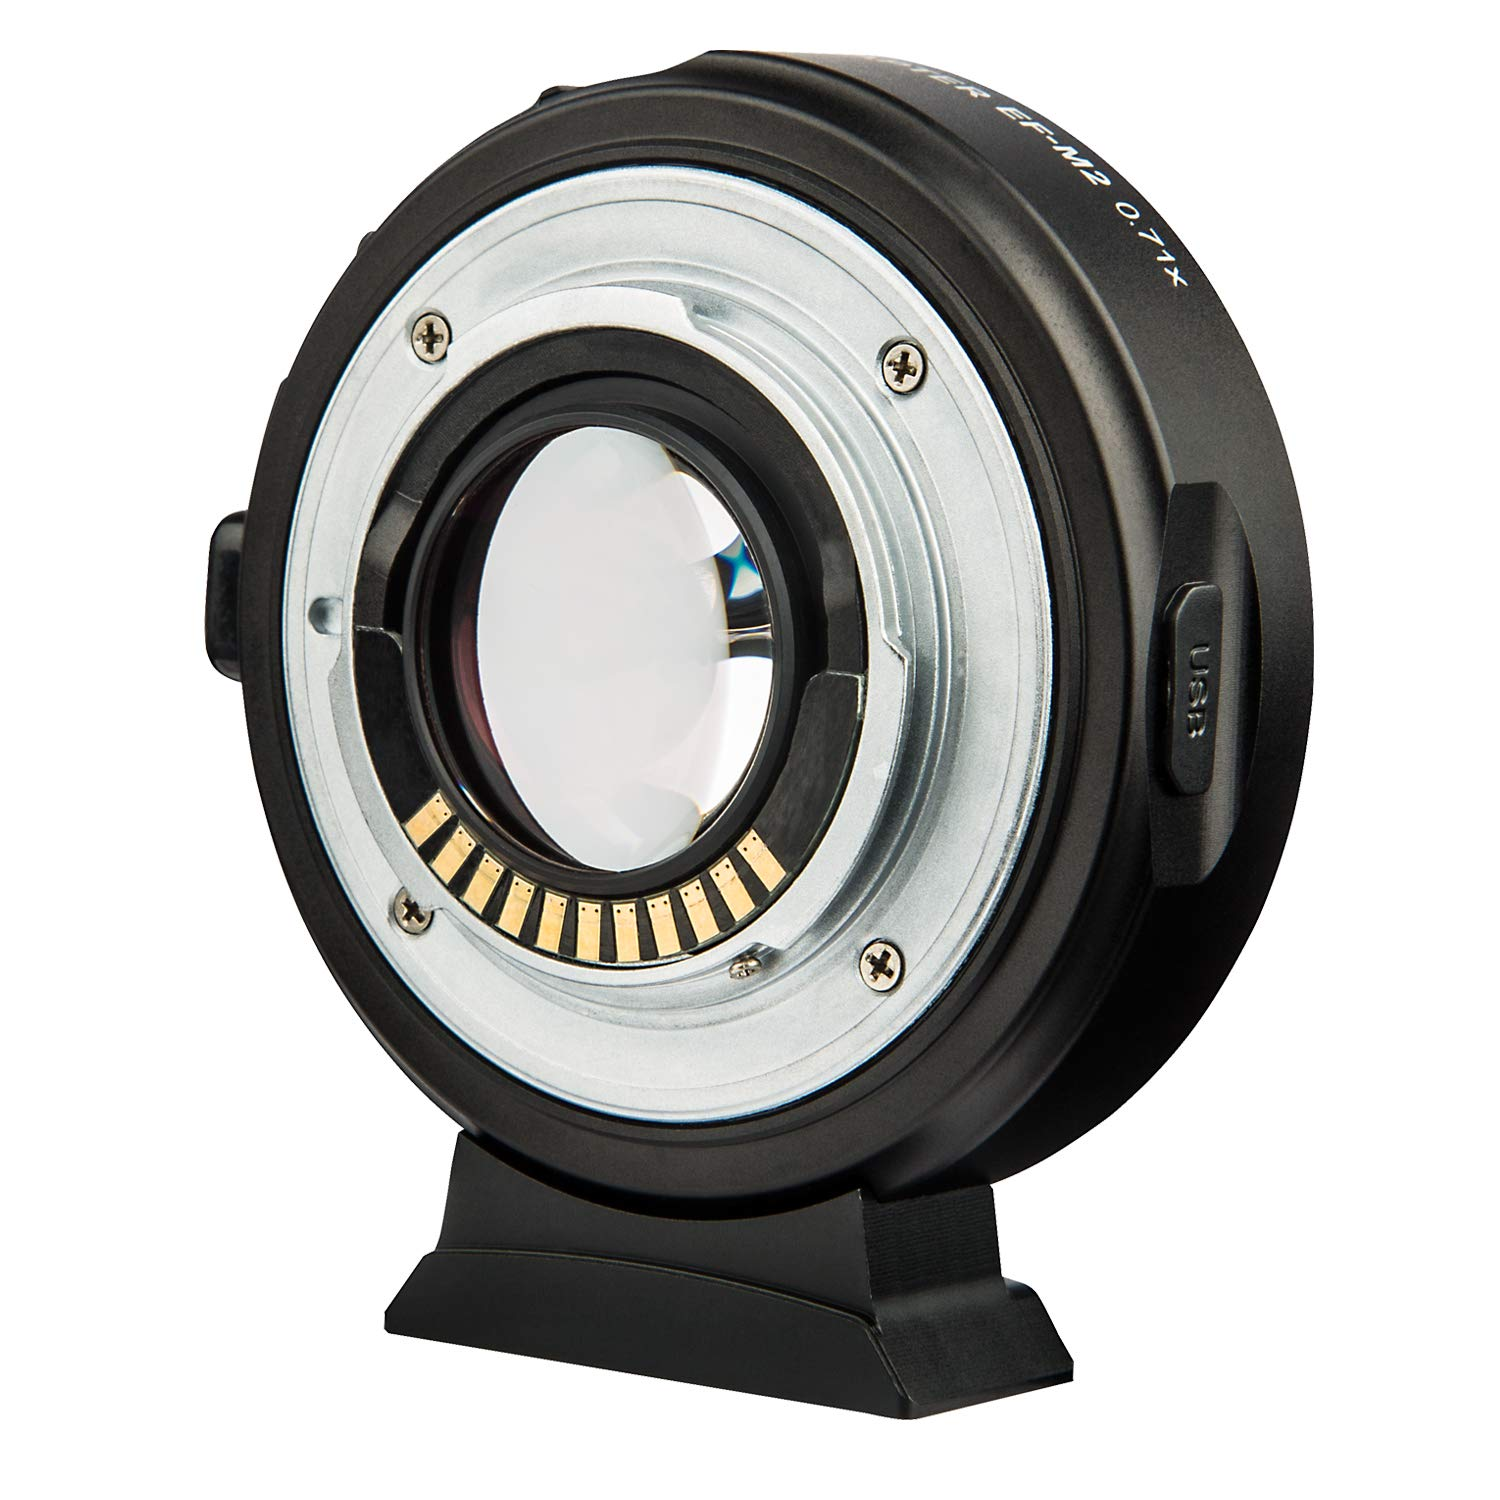 EF-M Mount Mirrorless Camera M1 M2 M3 M5 M6 M10 M50 M100 Viltrox EF-EOS M Electronic AF Auto Focus Lens Mount Adapter for Canon EF//EF-S Lens to Canon EOS-M